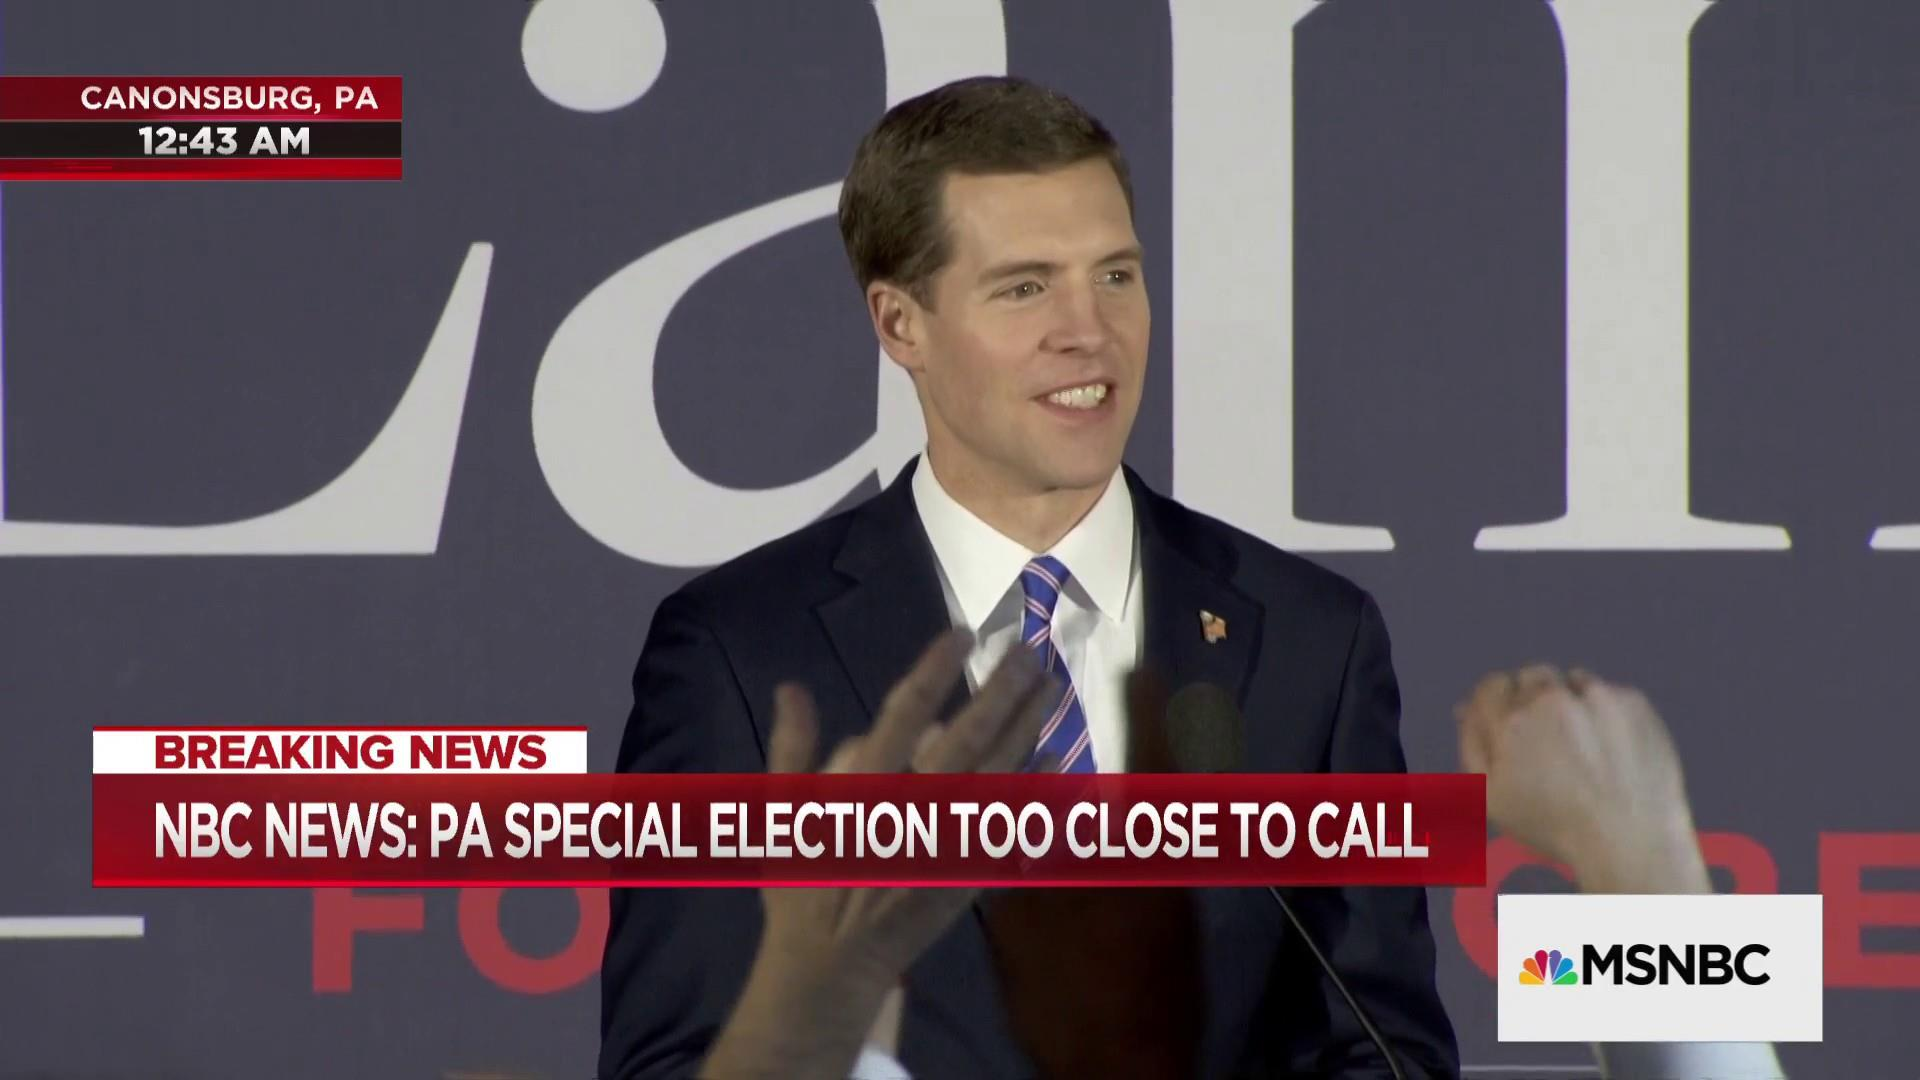 Democrat Conor Lamb declares victory in PA special election